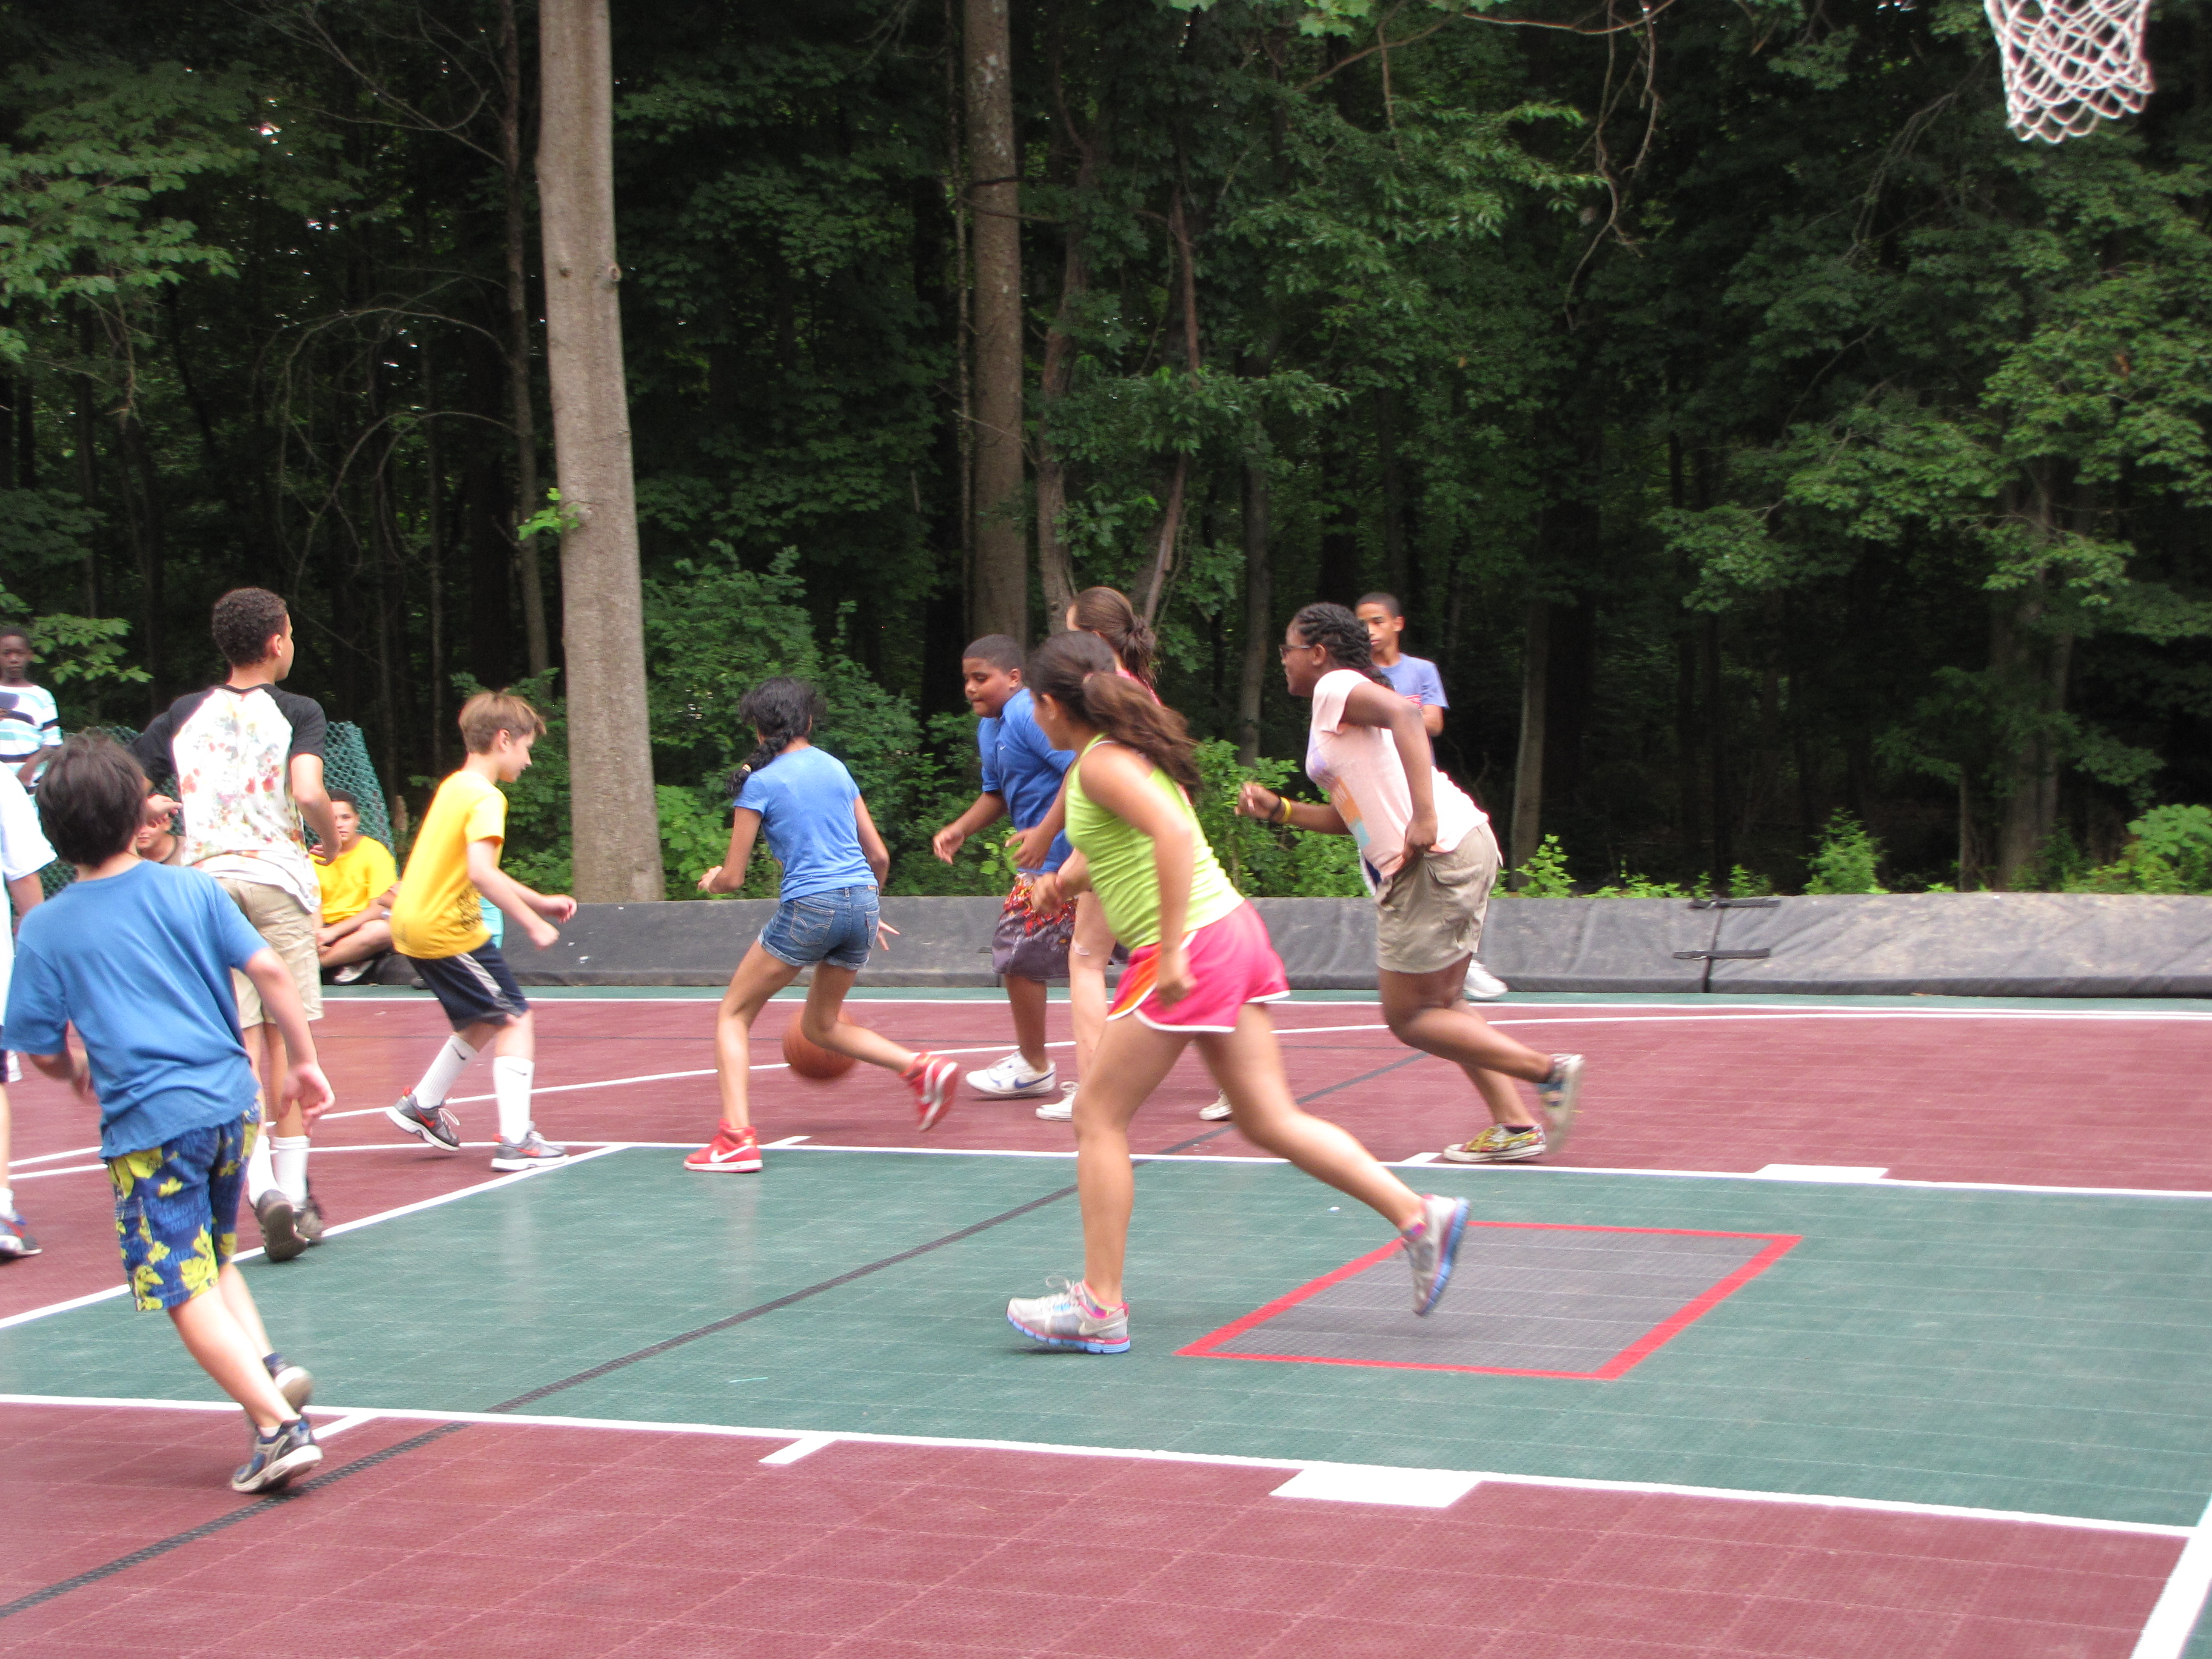 A great game of basketball on the multi-sport court.